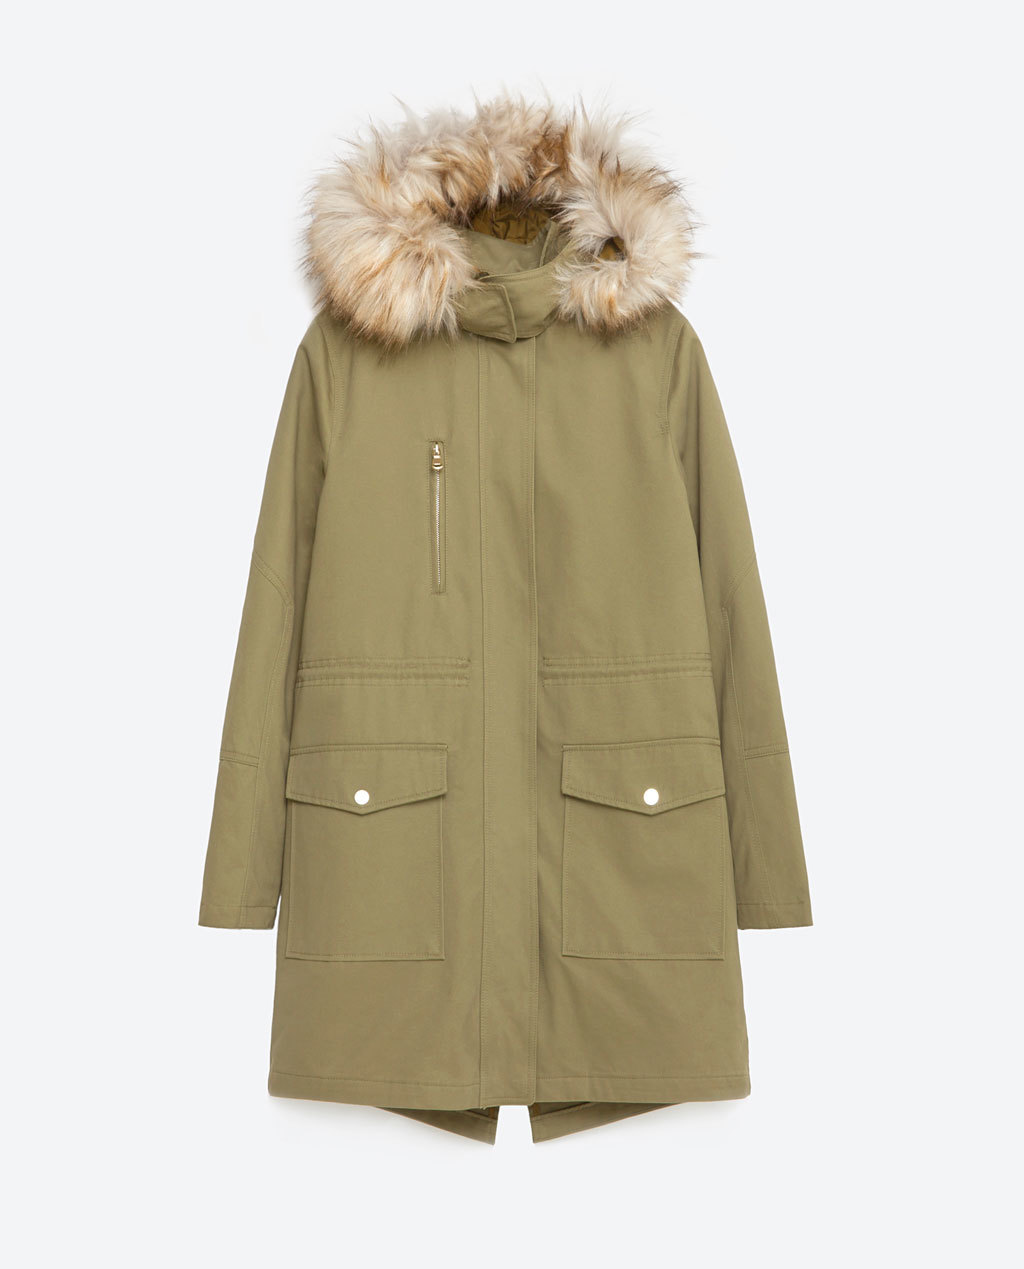 Oversized Parka - pattern: plain; collar: funnel; style: parka; back detail: hood; length: mid thigh; predominant colour: khaki; secondary colour: stone; occasions: casual, creative work; fit: straight cut (boxy); fibres: cotton - 100%; sleeve length: long sleeve; sleeve style: standard; collar break: high/illusion of break when open; pattern type: fabric; texture group: woven light midweight; embellishment: fur; season: s/s 2016; wardrobe: highlight